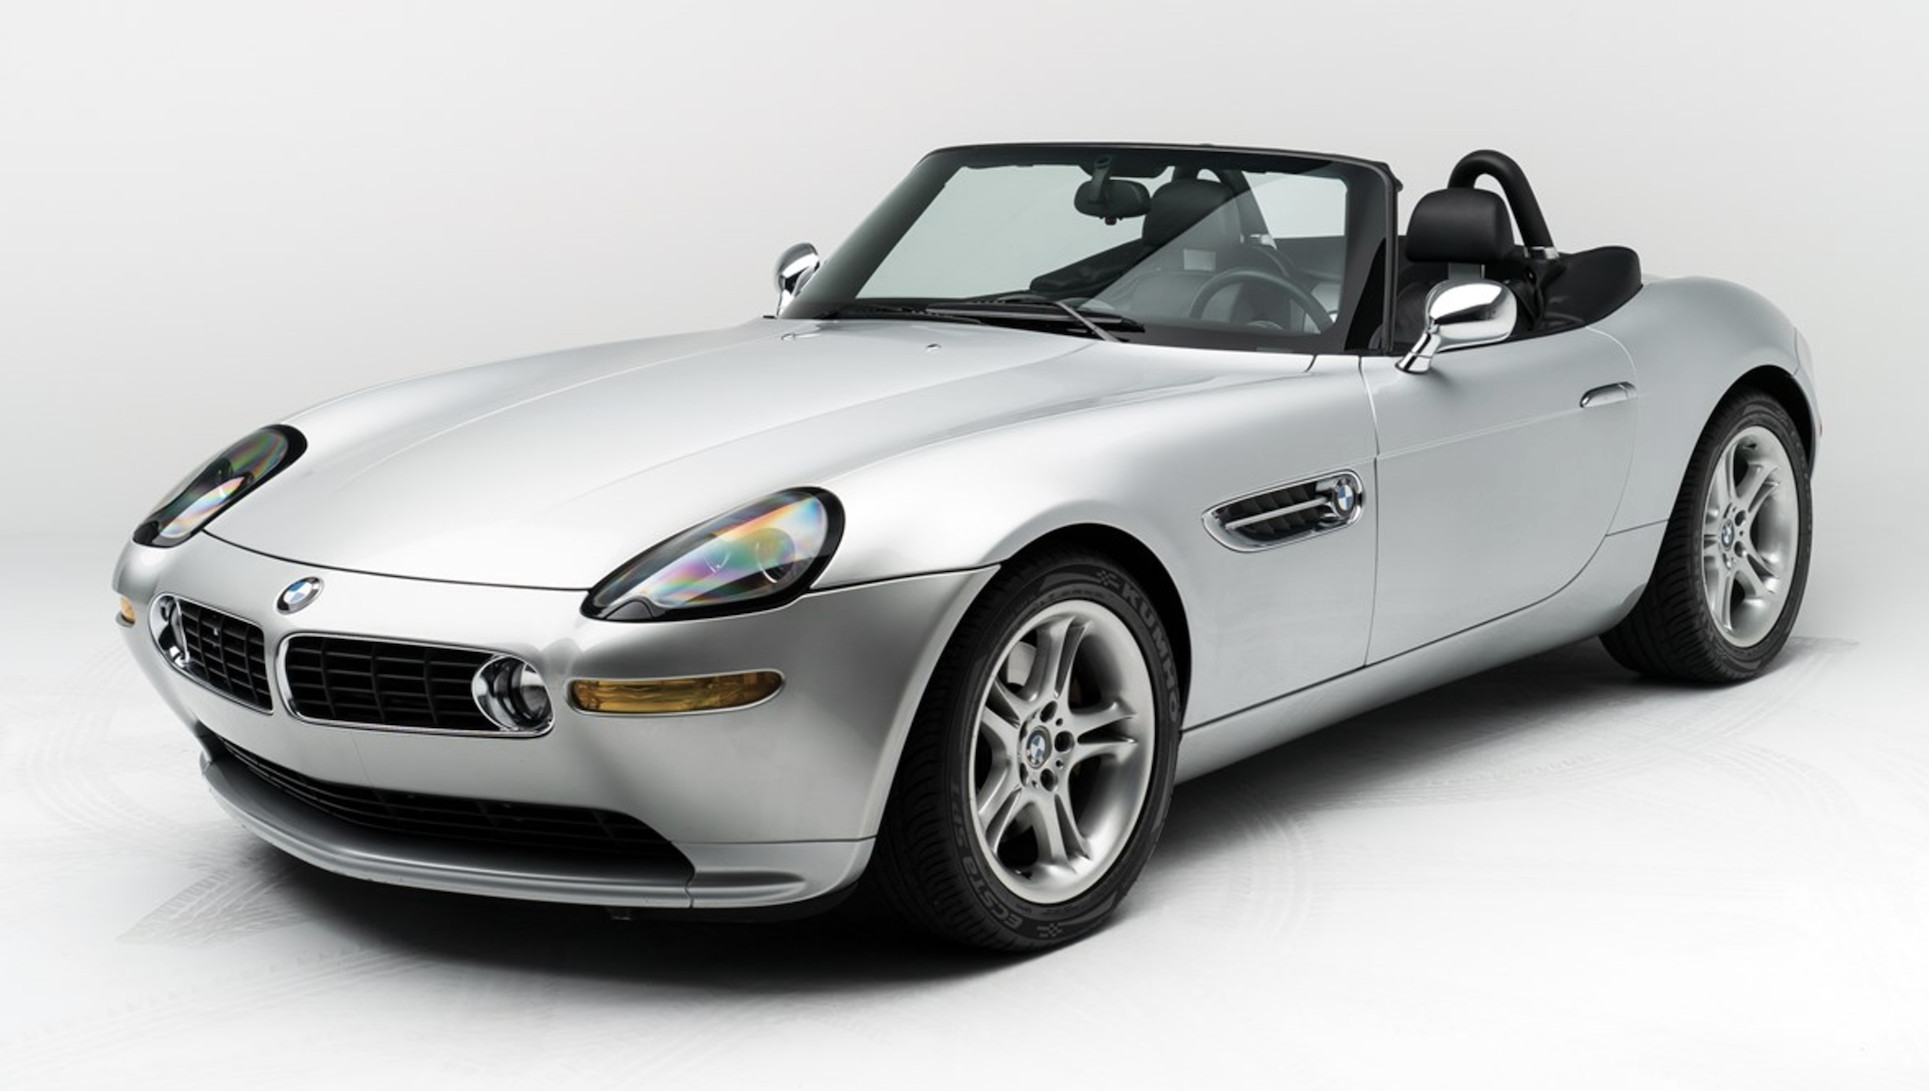 Steve Jobs' former BMW Z8 heading to auction